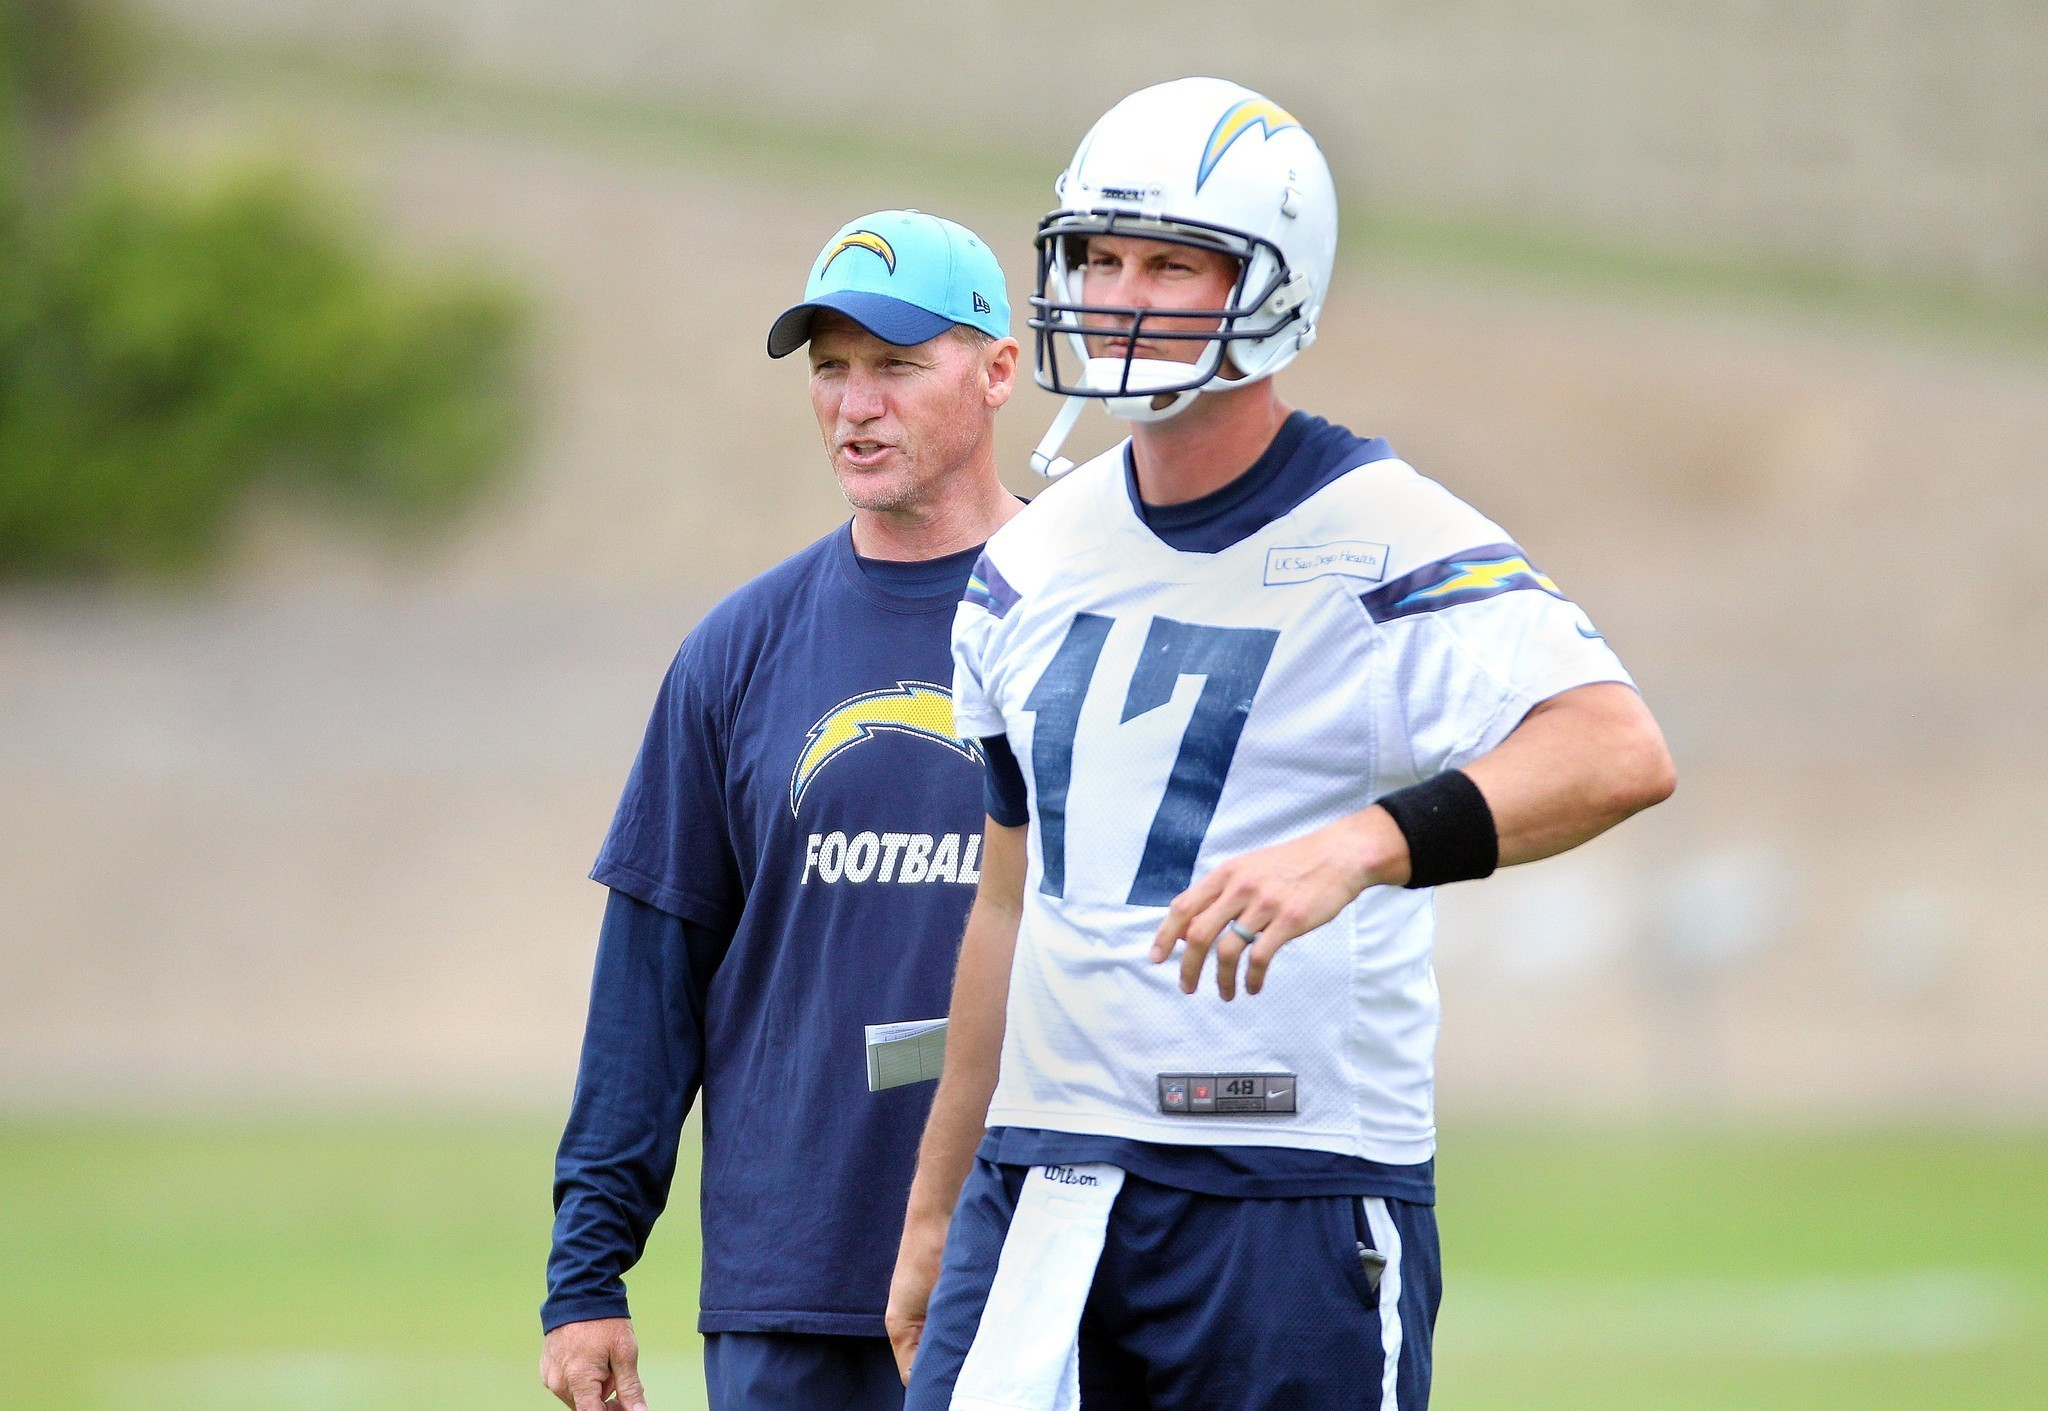 For Philip Rivers going with the flow es easy LA Times